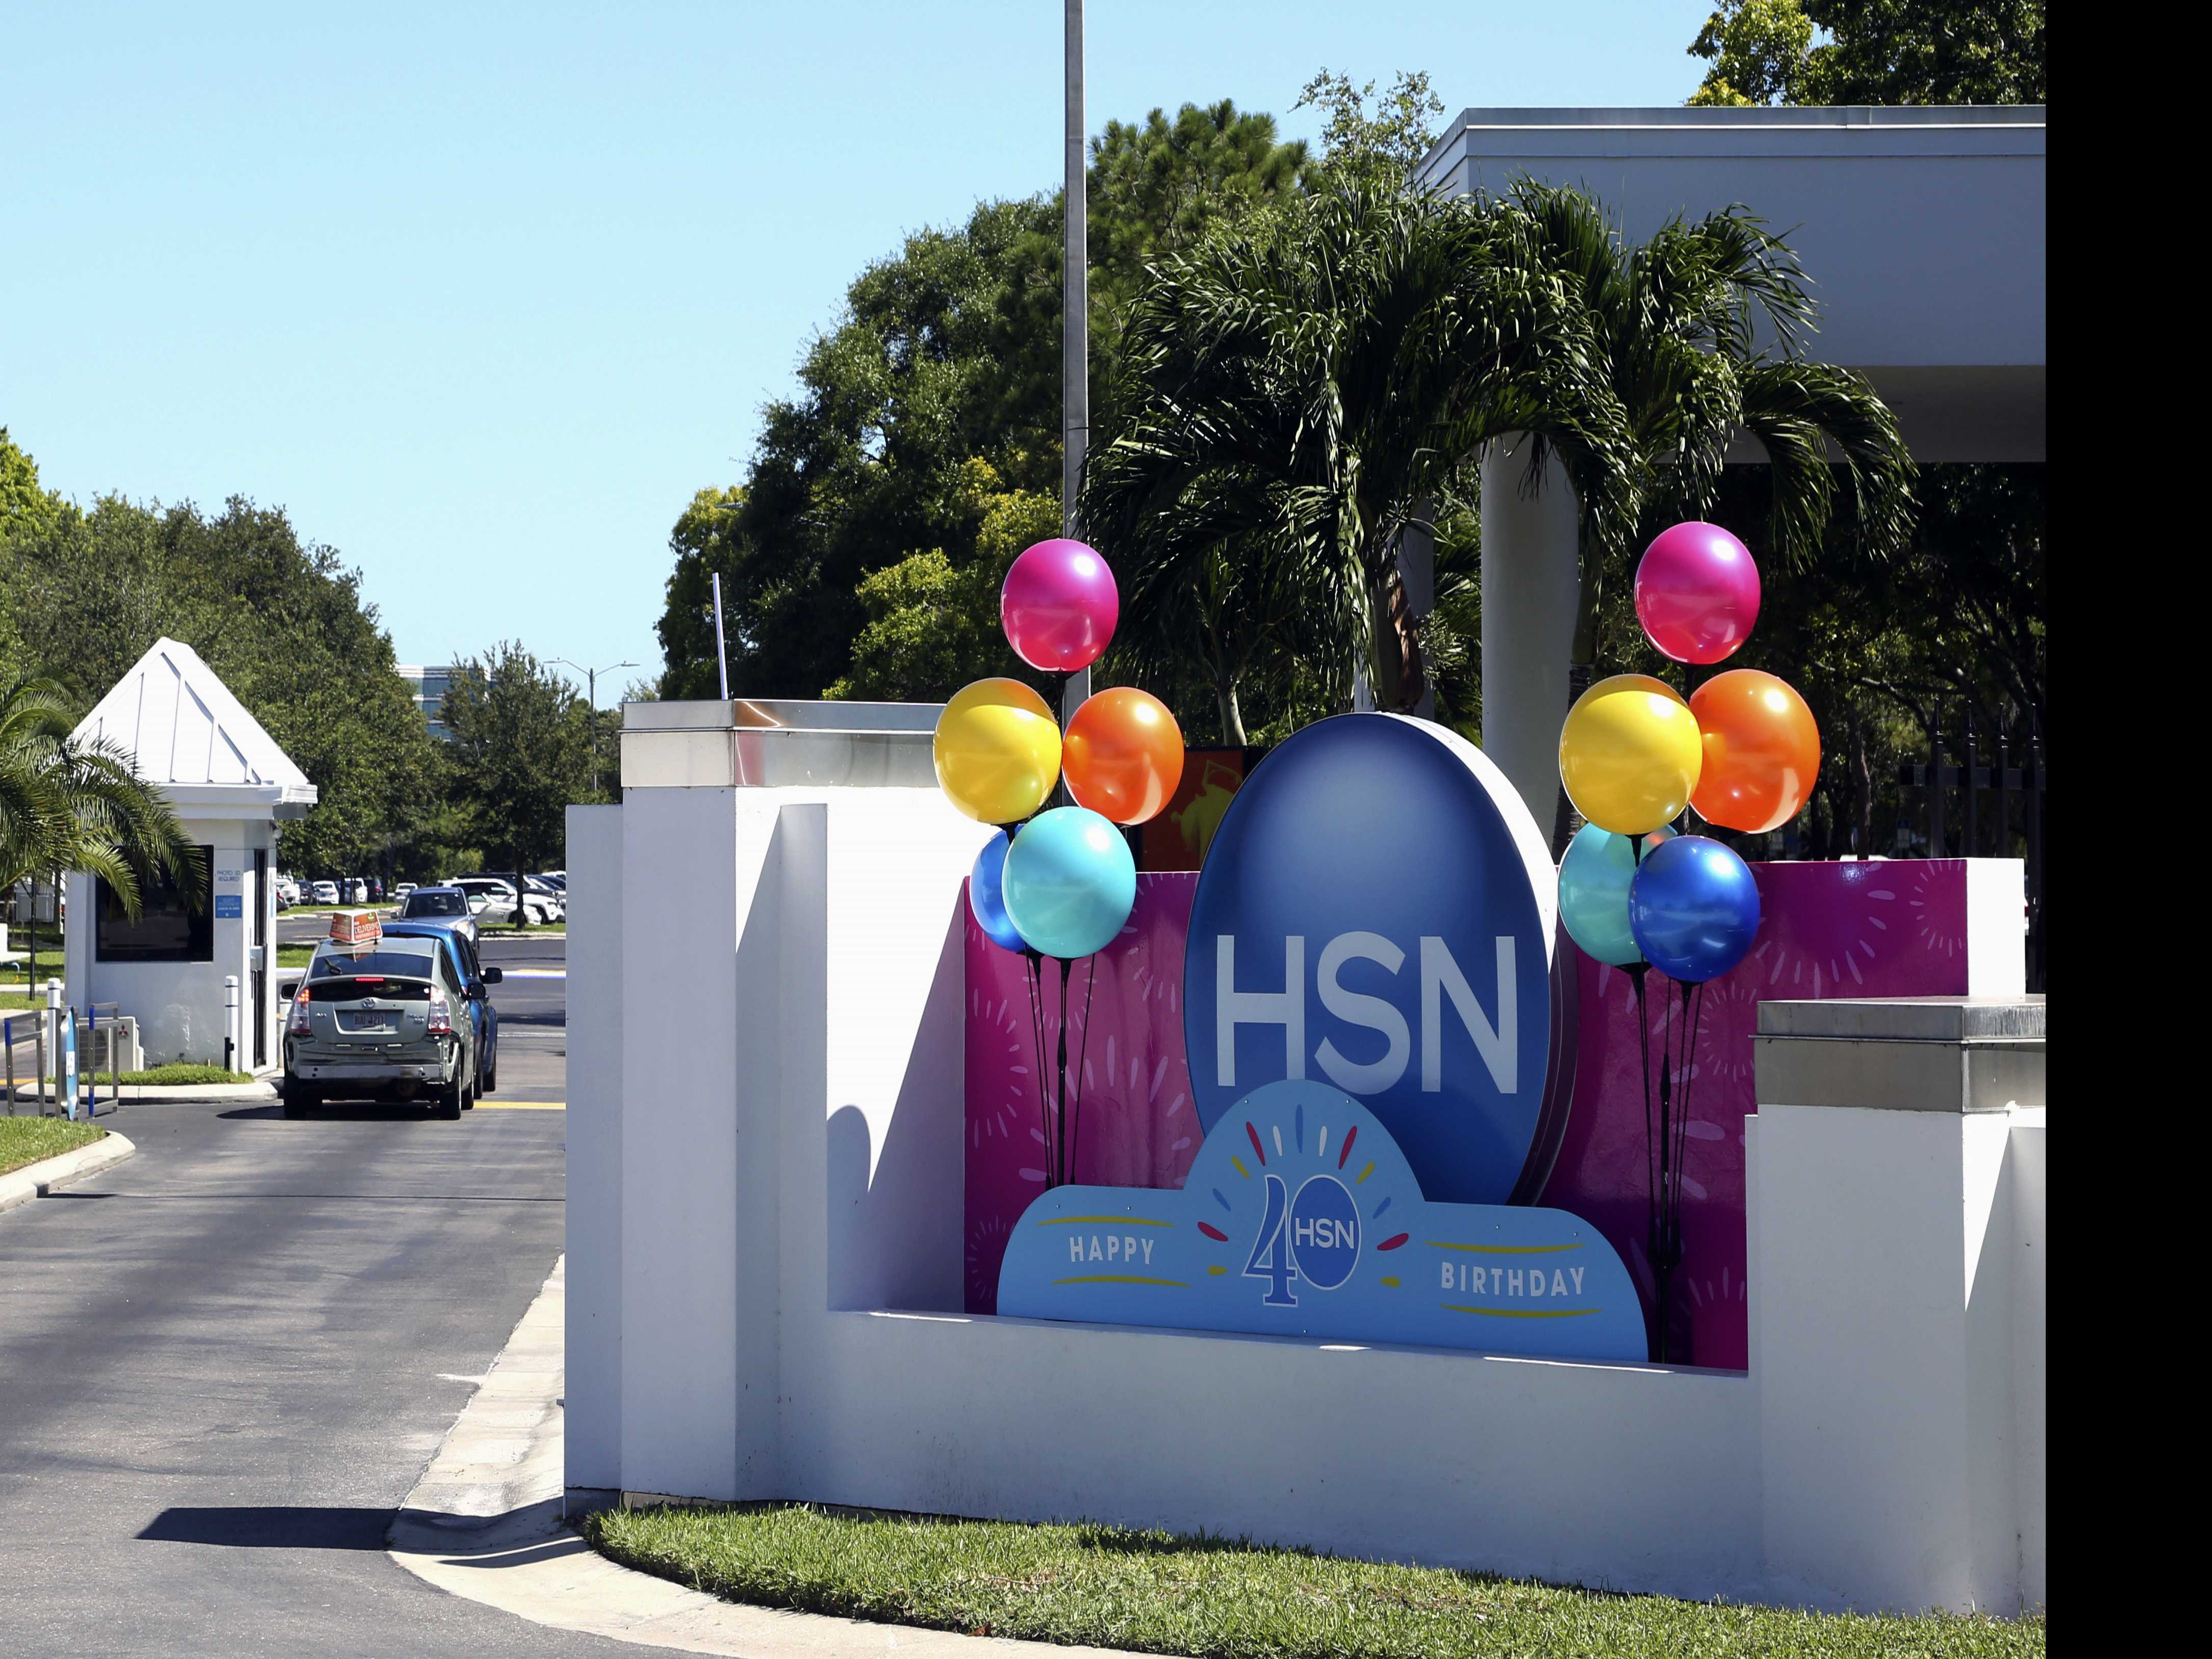 QVC Parent Company Buys HSN for $2.6 Billion in Stock